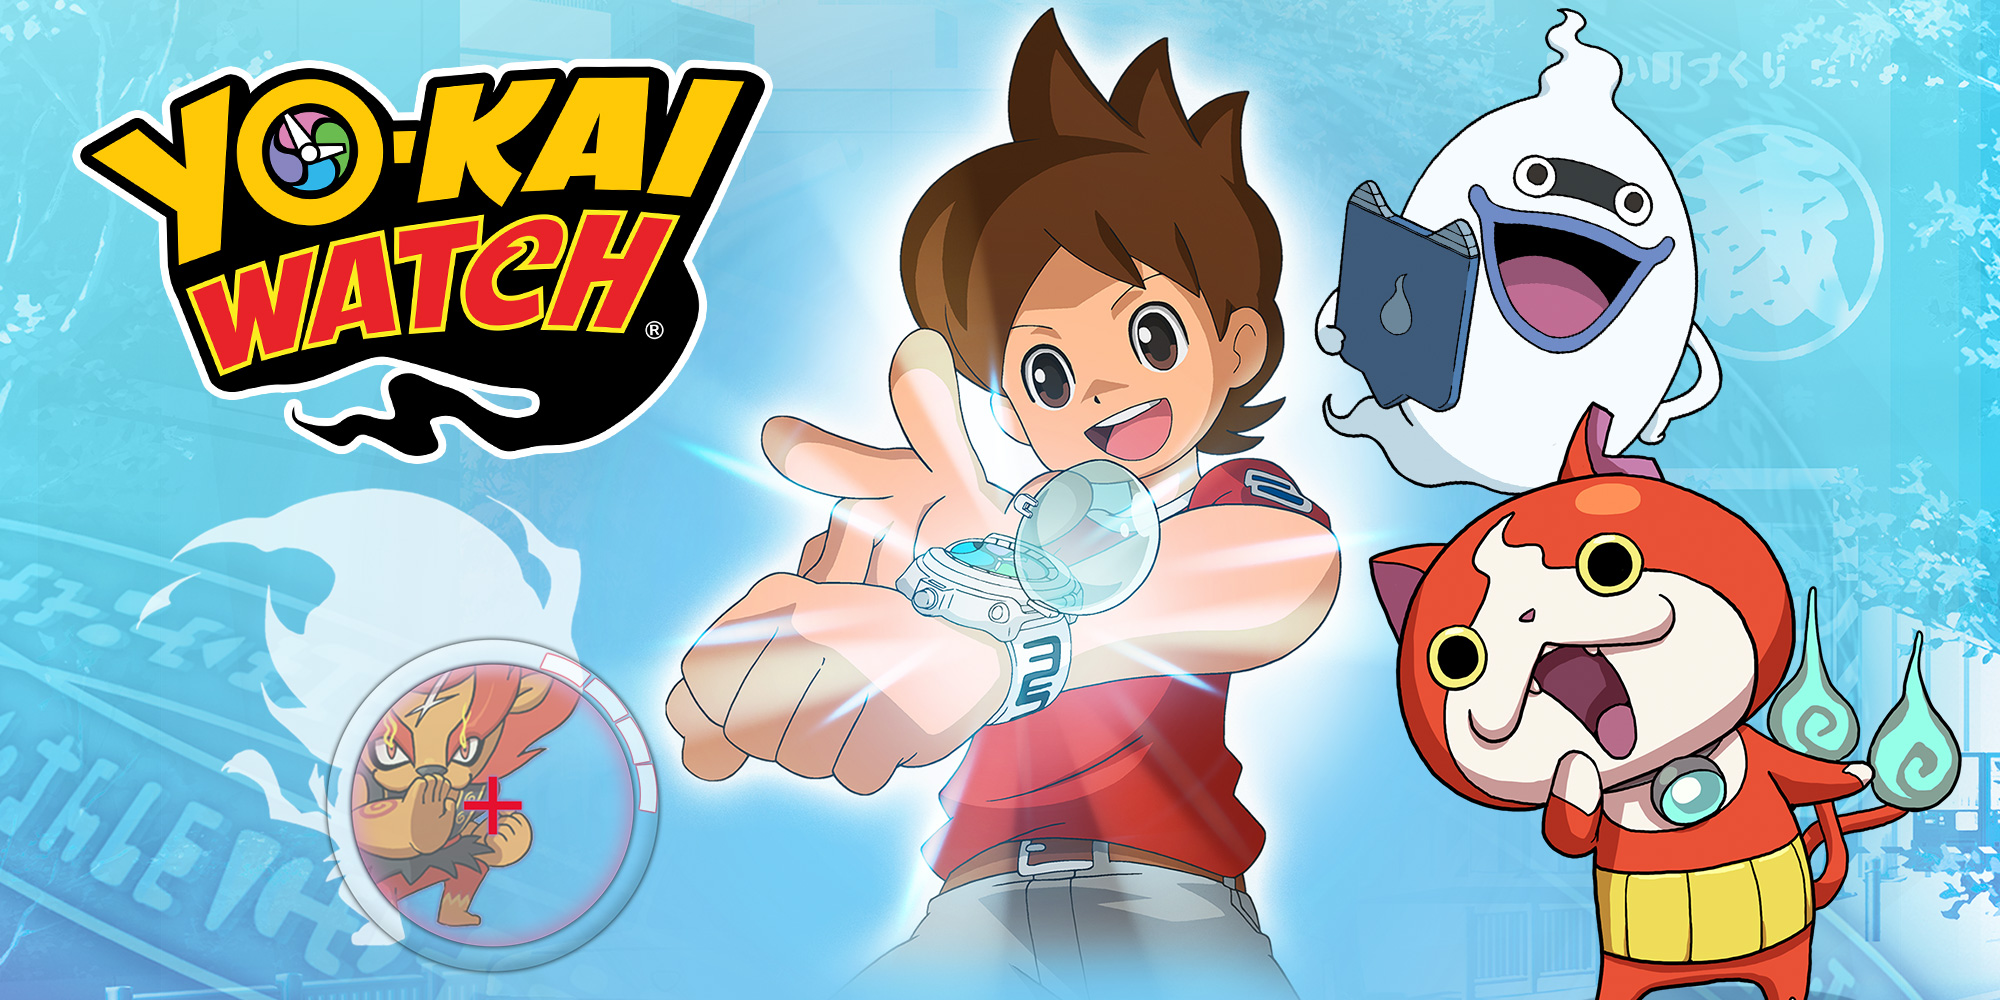 YO-KAI WATCH®